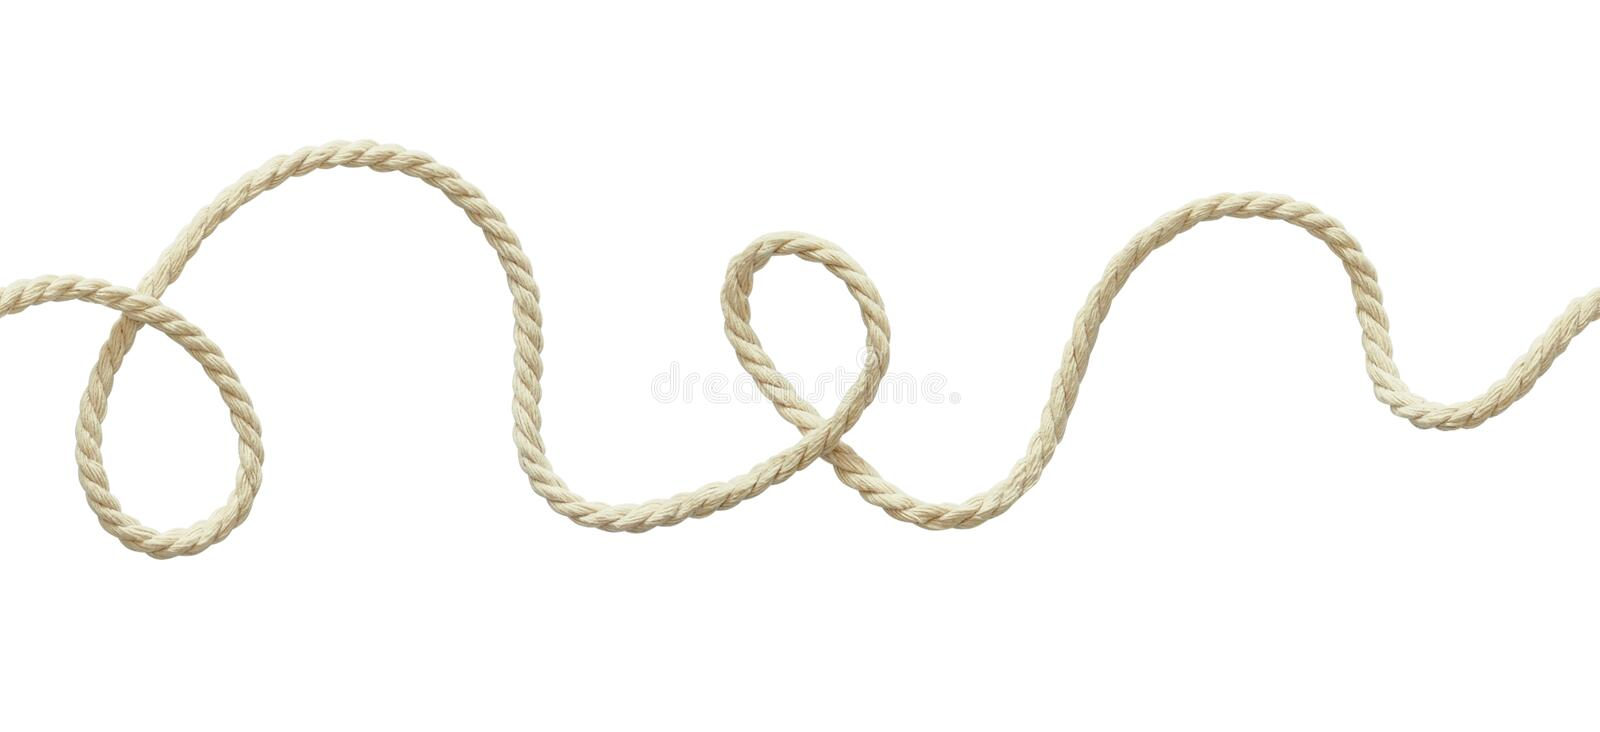 White wavy rope stock photo